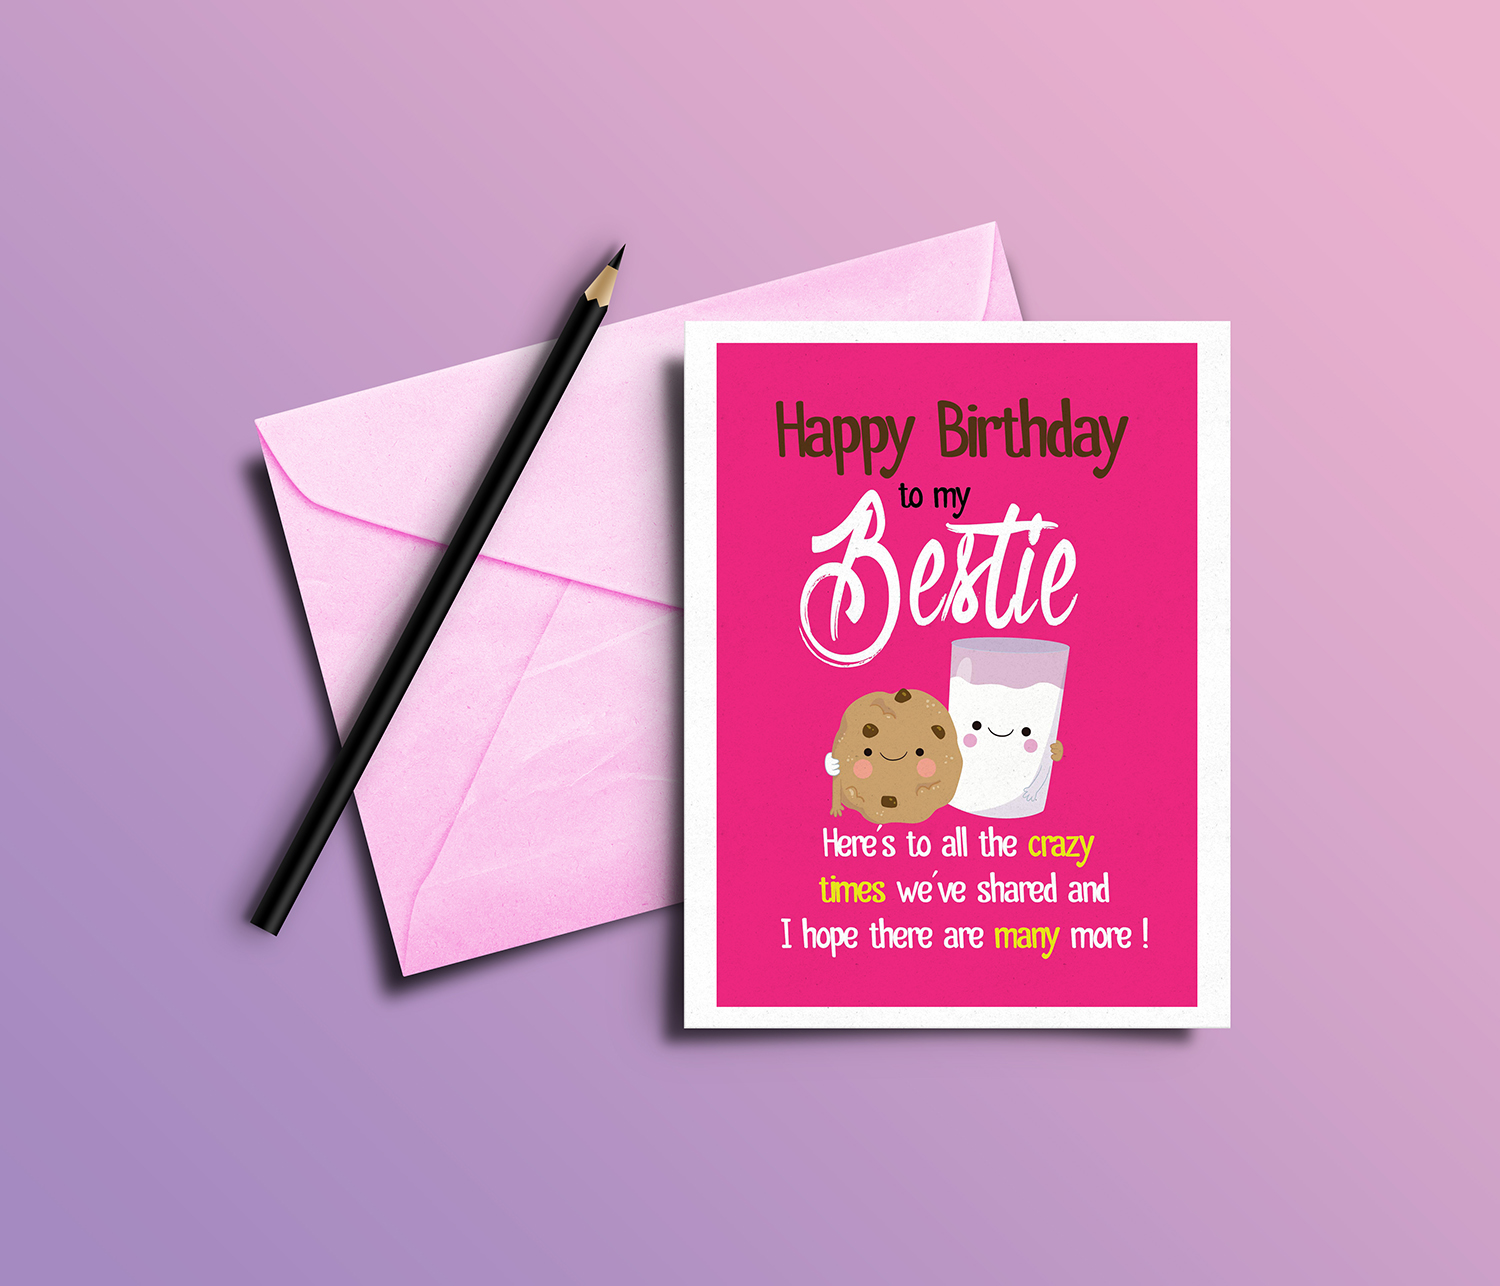 Serious Elegant It Company Greeting Card Design For Bloomex By